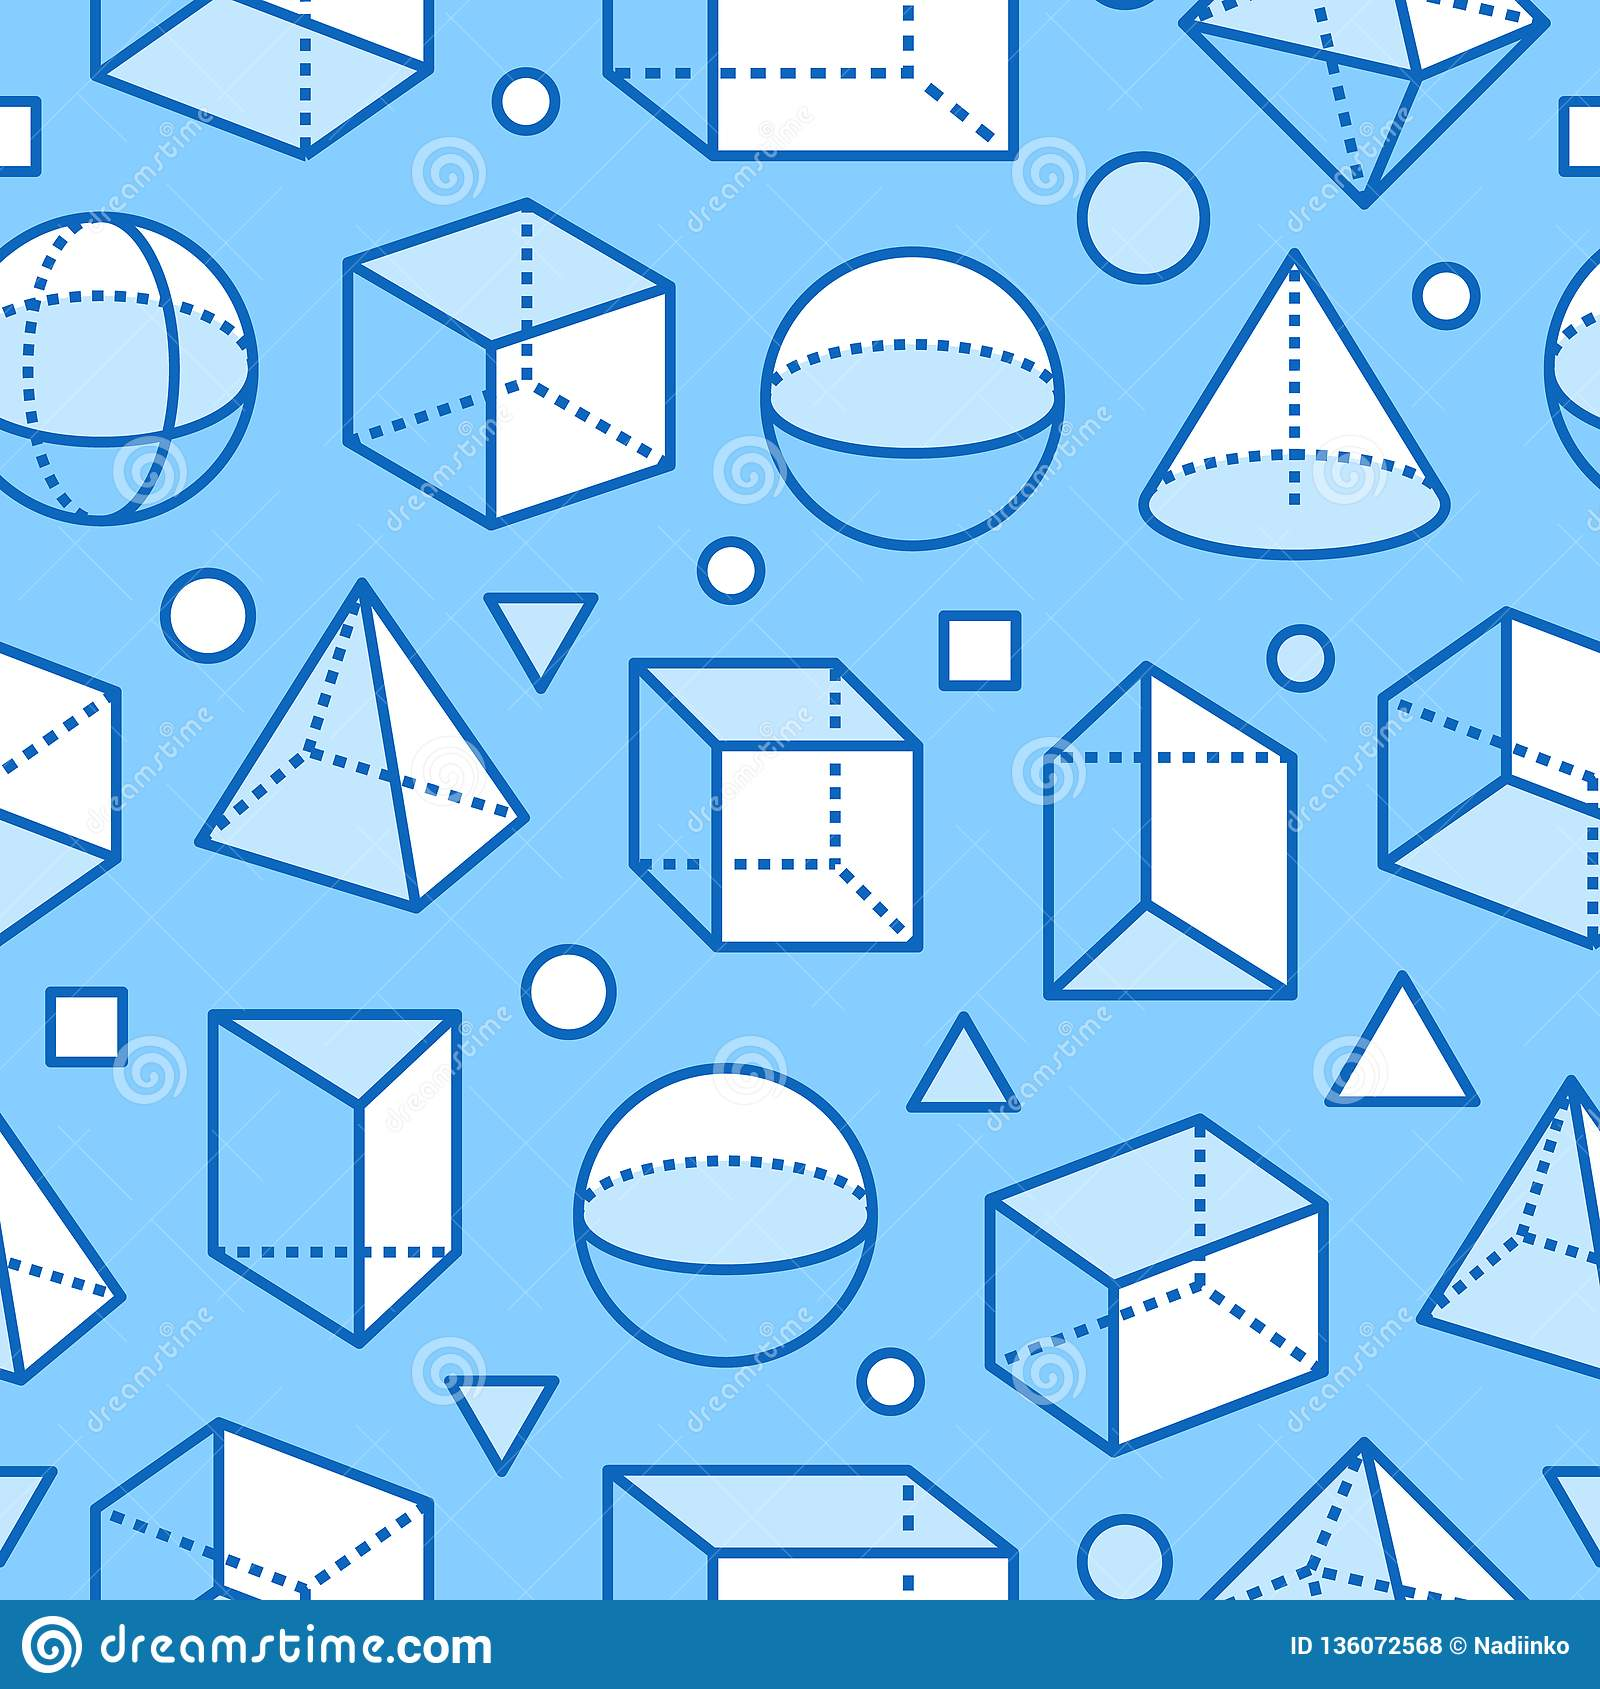 Geometric Shapes Seamless Pattern With Flat Line Icons